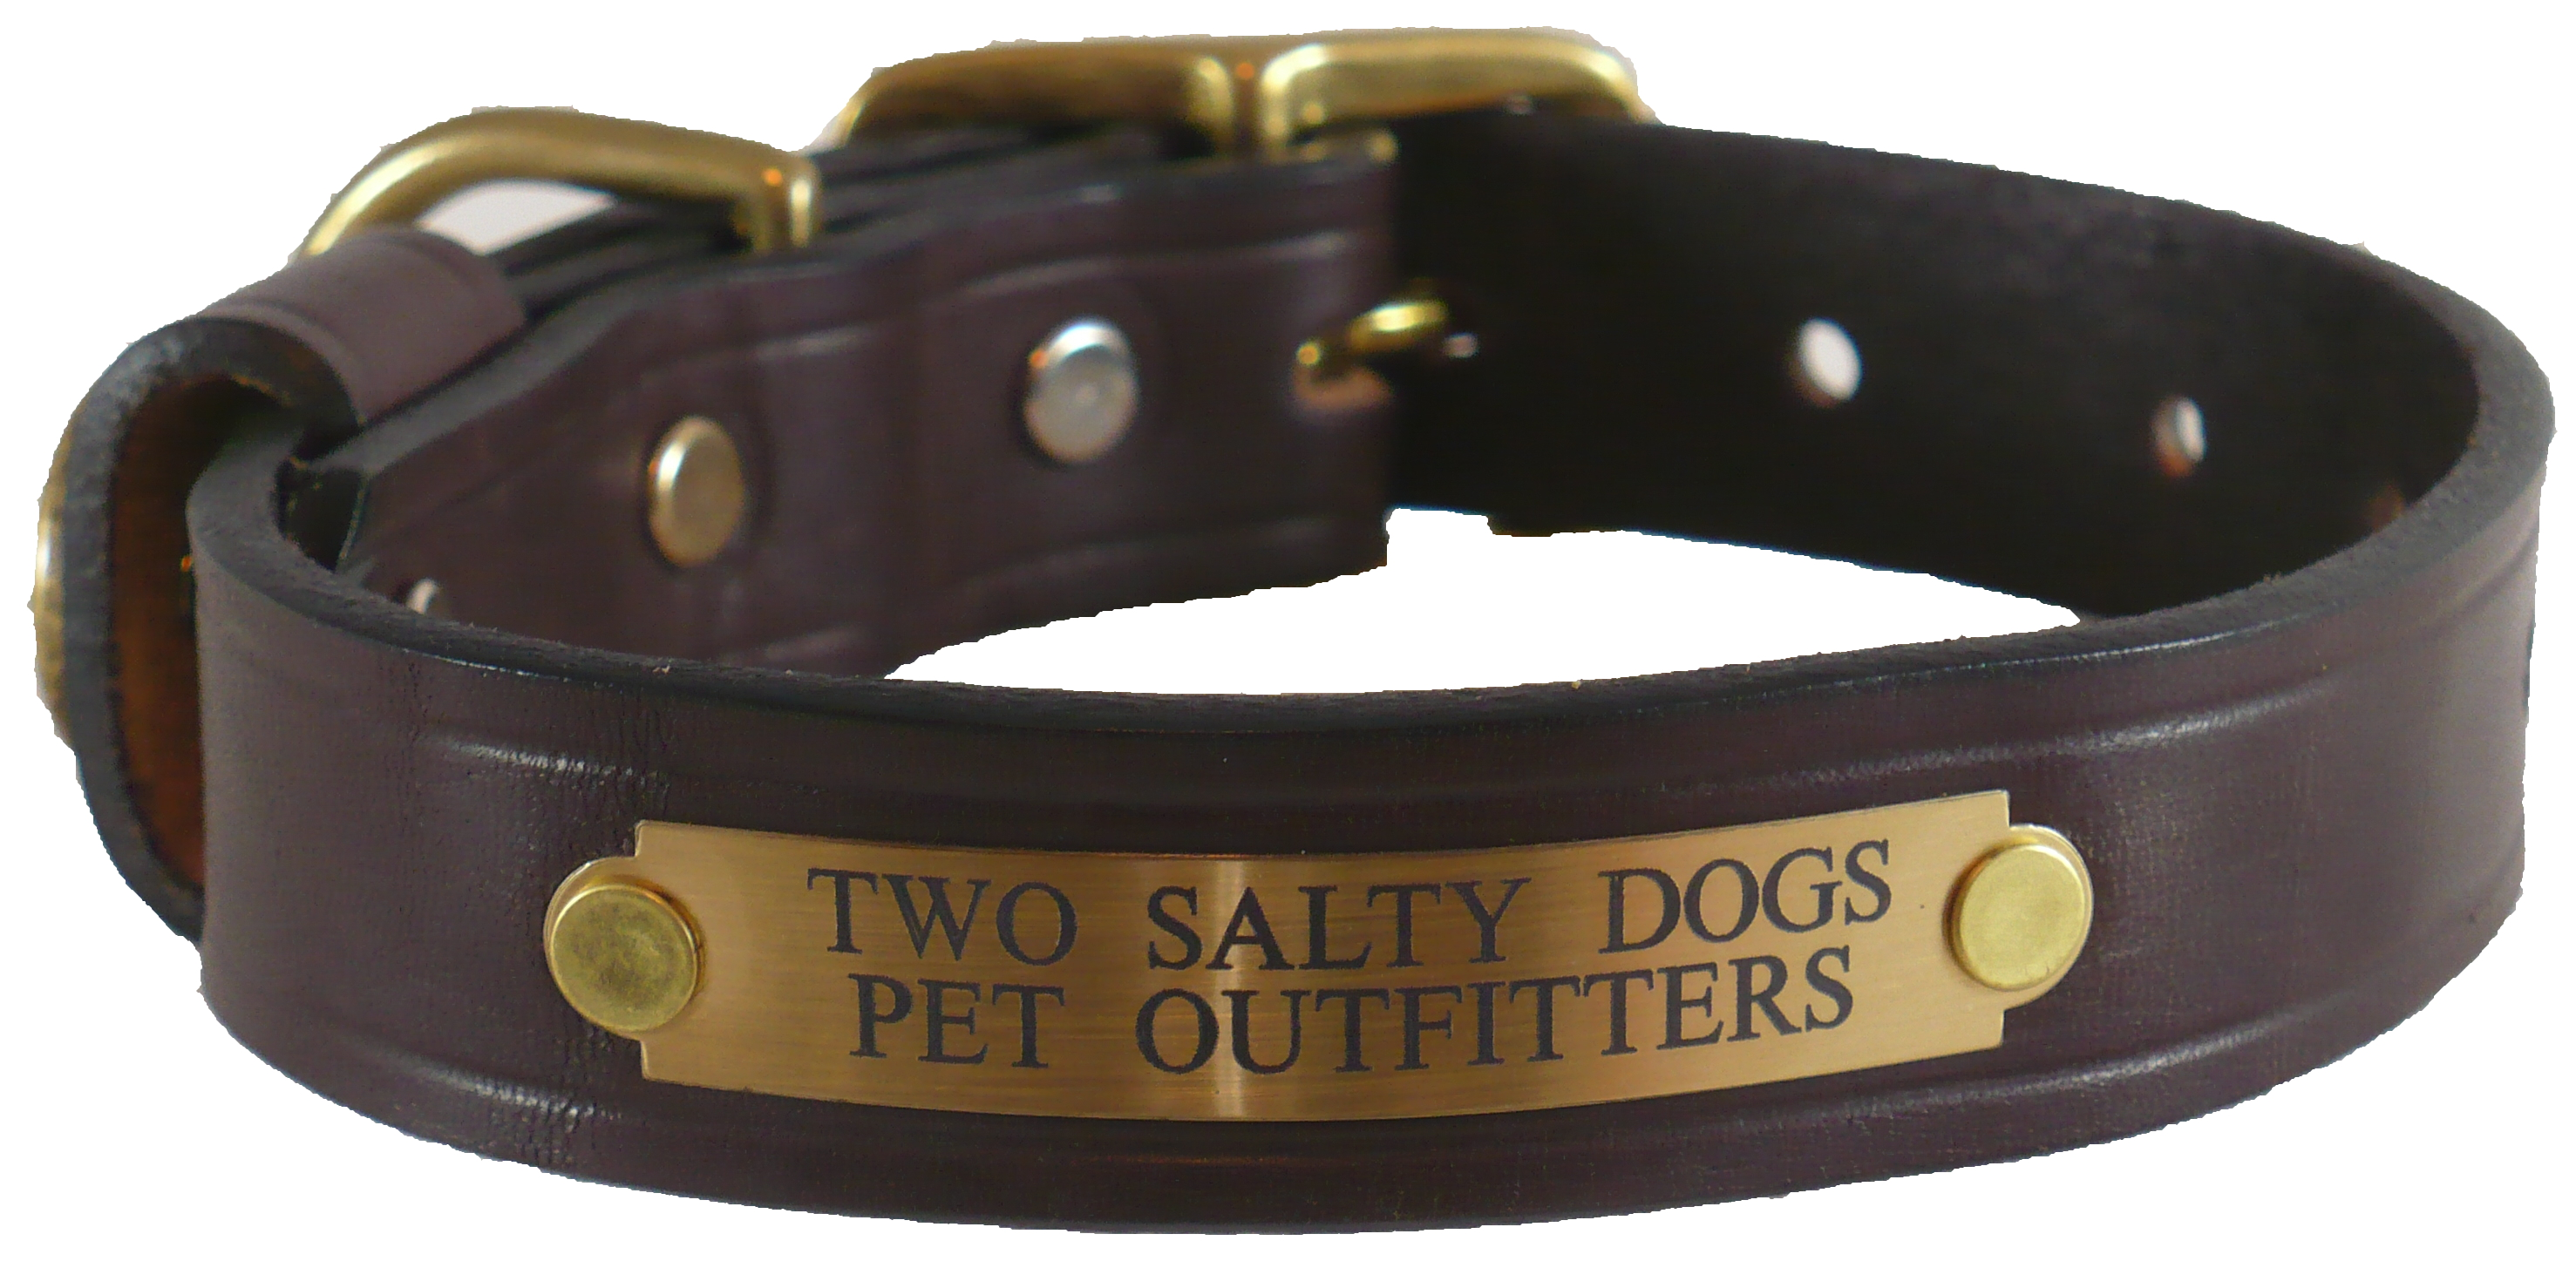 OU-dog-collar-leather-2.jpg